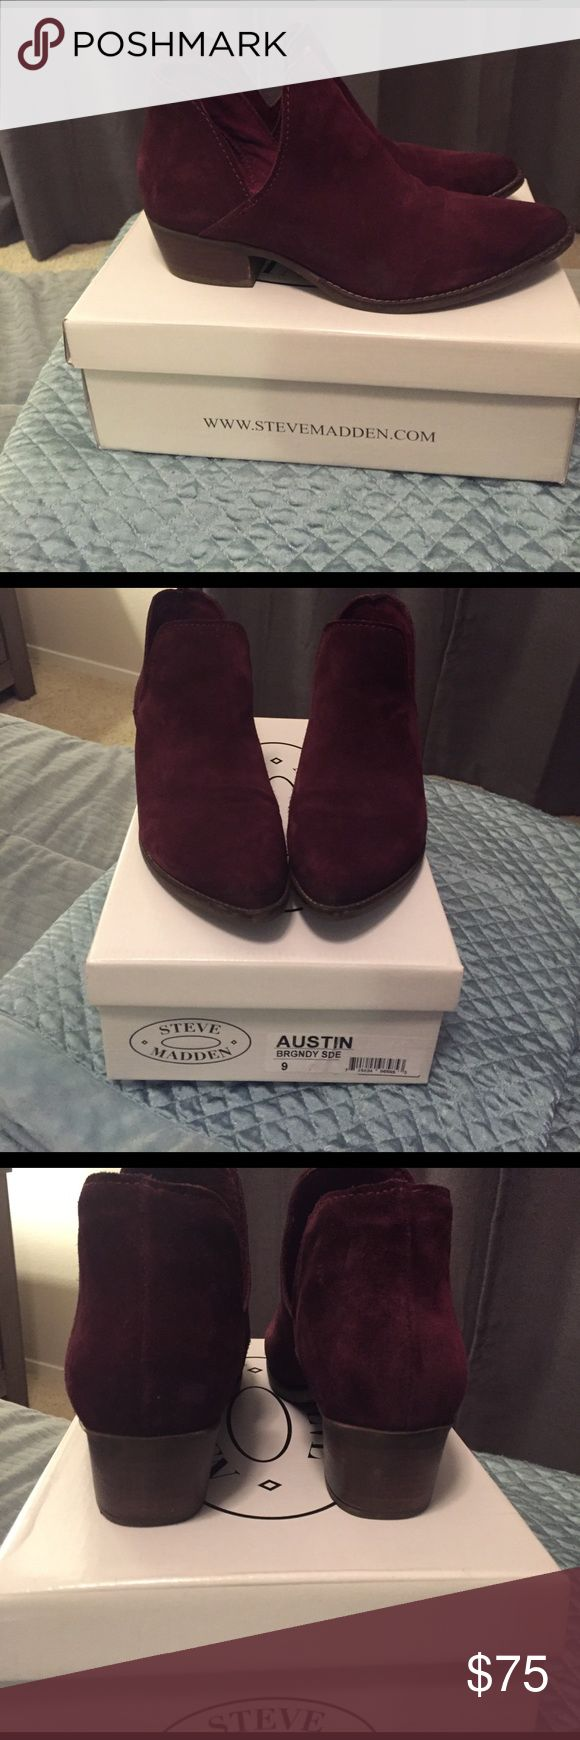 Steve Madden burgundy suede  ankle bootie, size 9 Burgundy suede Steve Madden bootie, like new, wore few times Steve Madden Shoes Ankle Boots & Booties